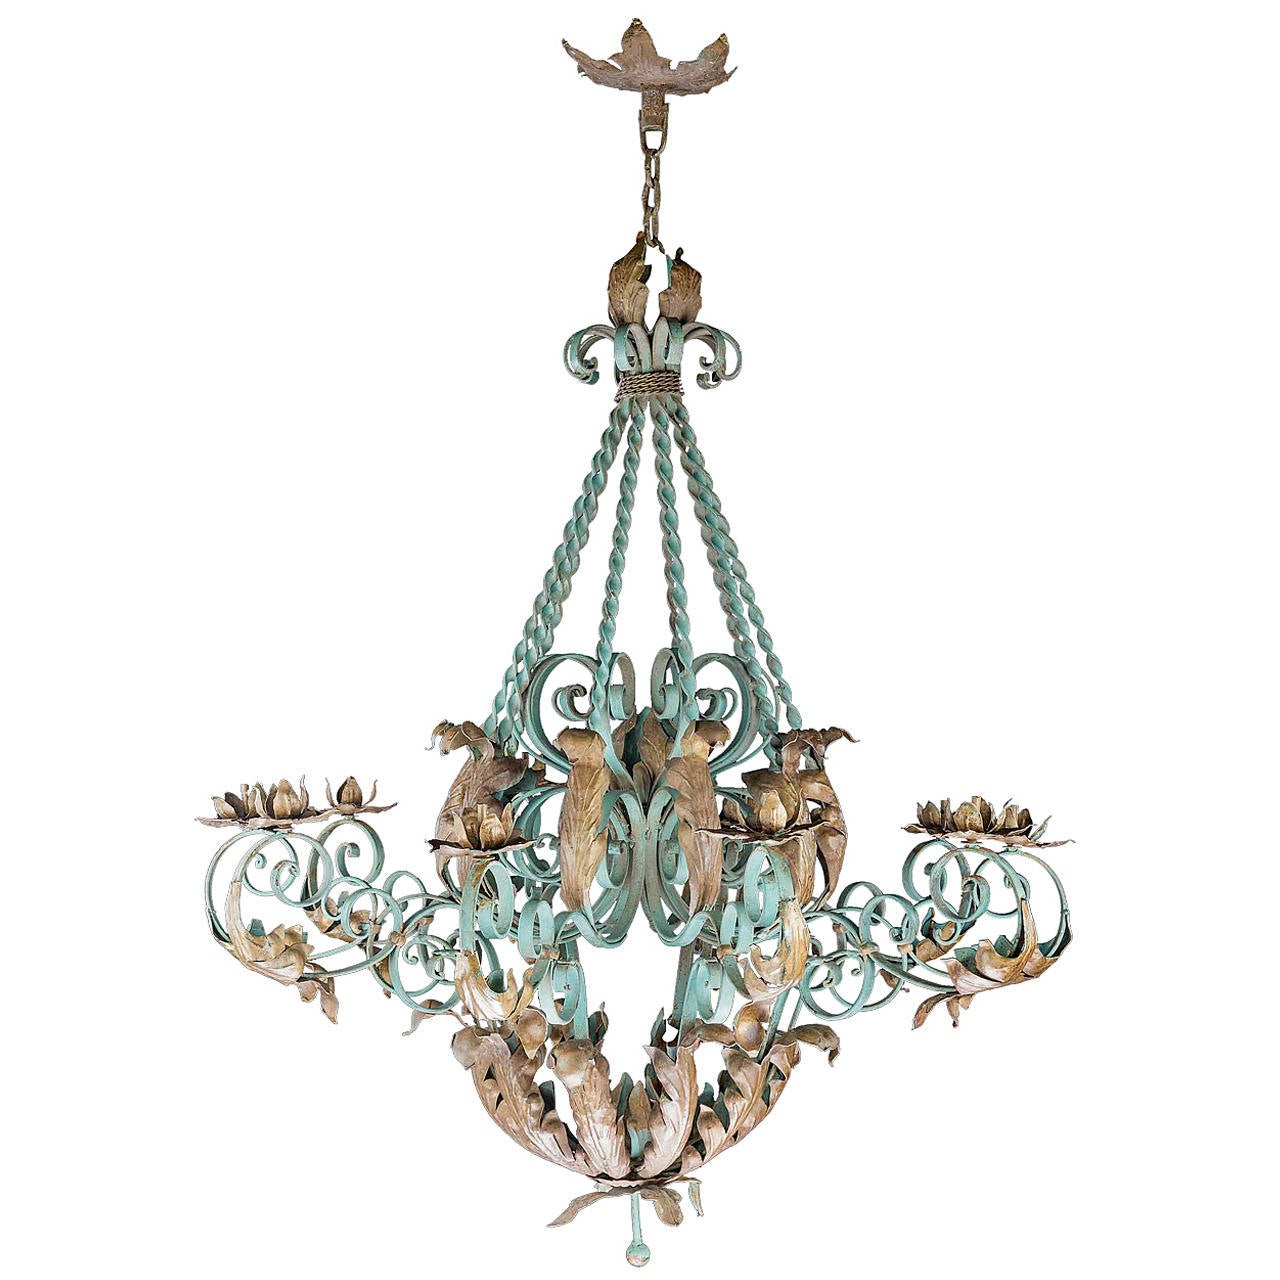 Early 20th Century Polychrome Wrought Iron Chandelier